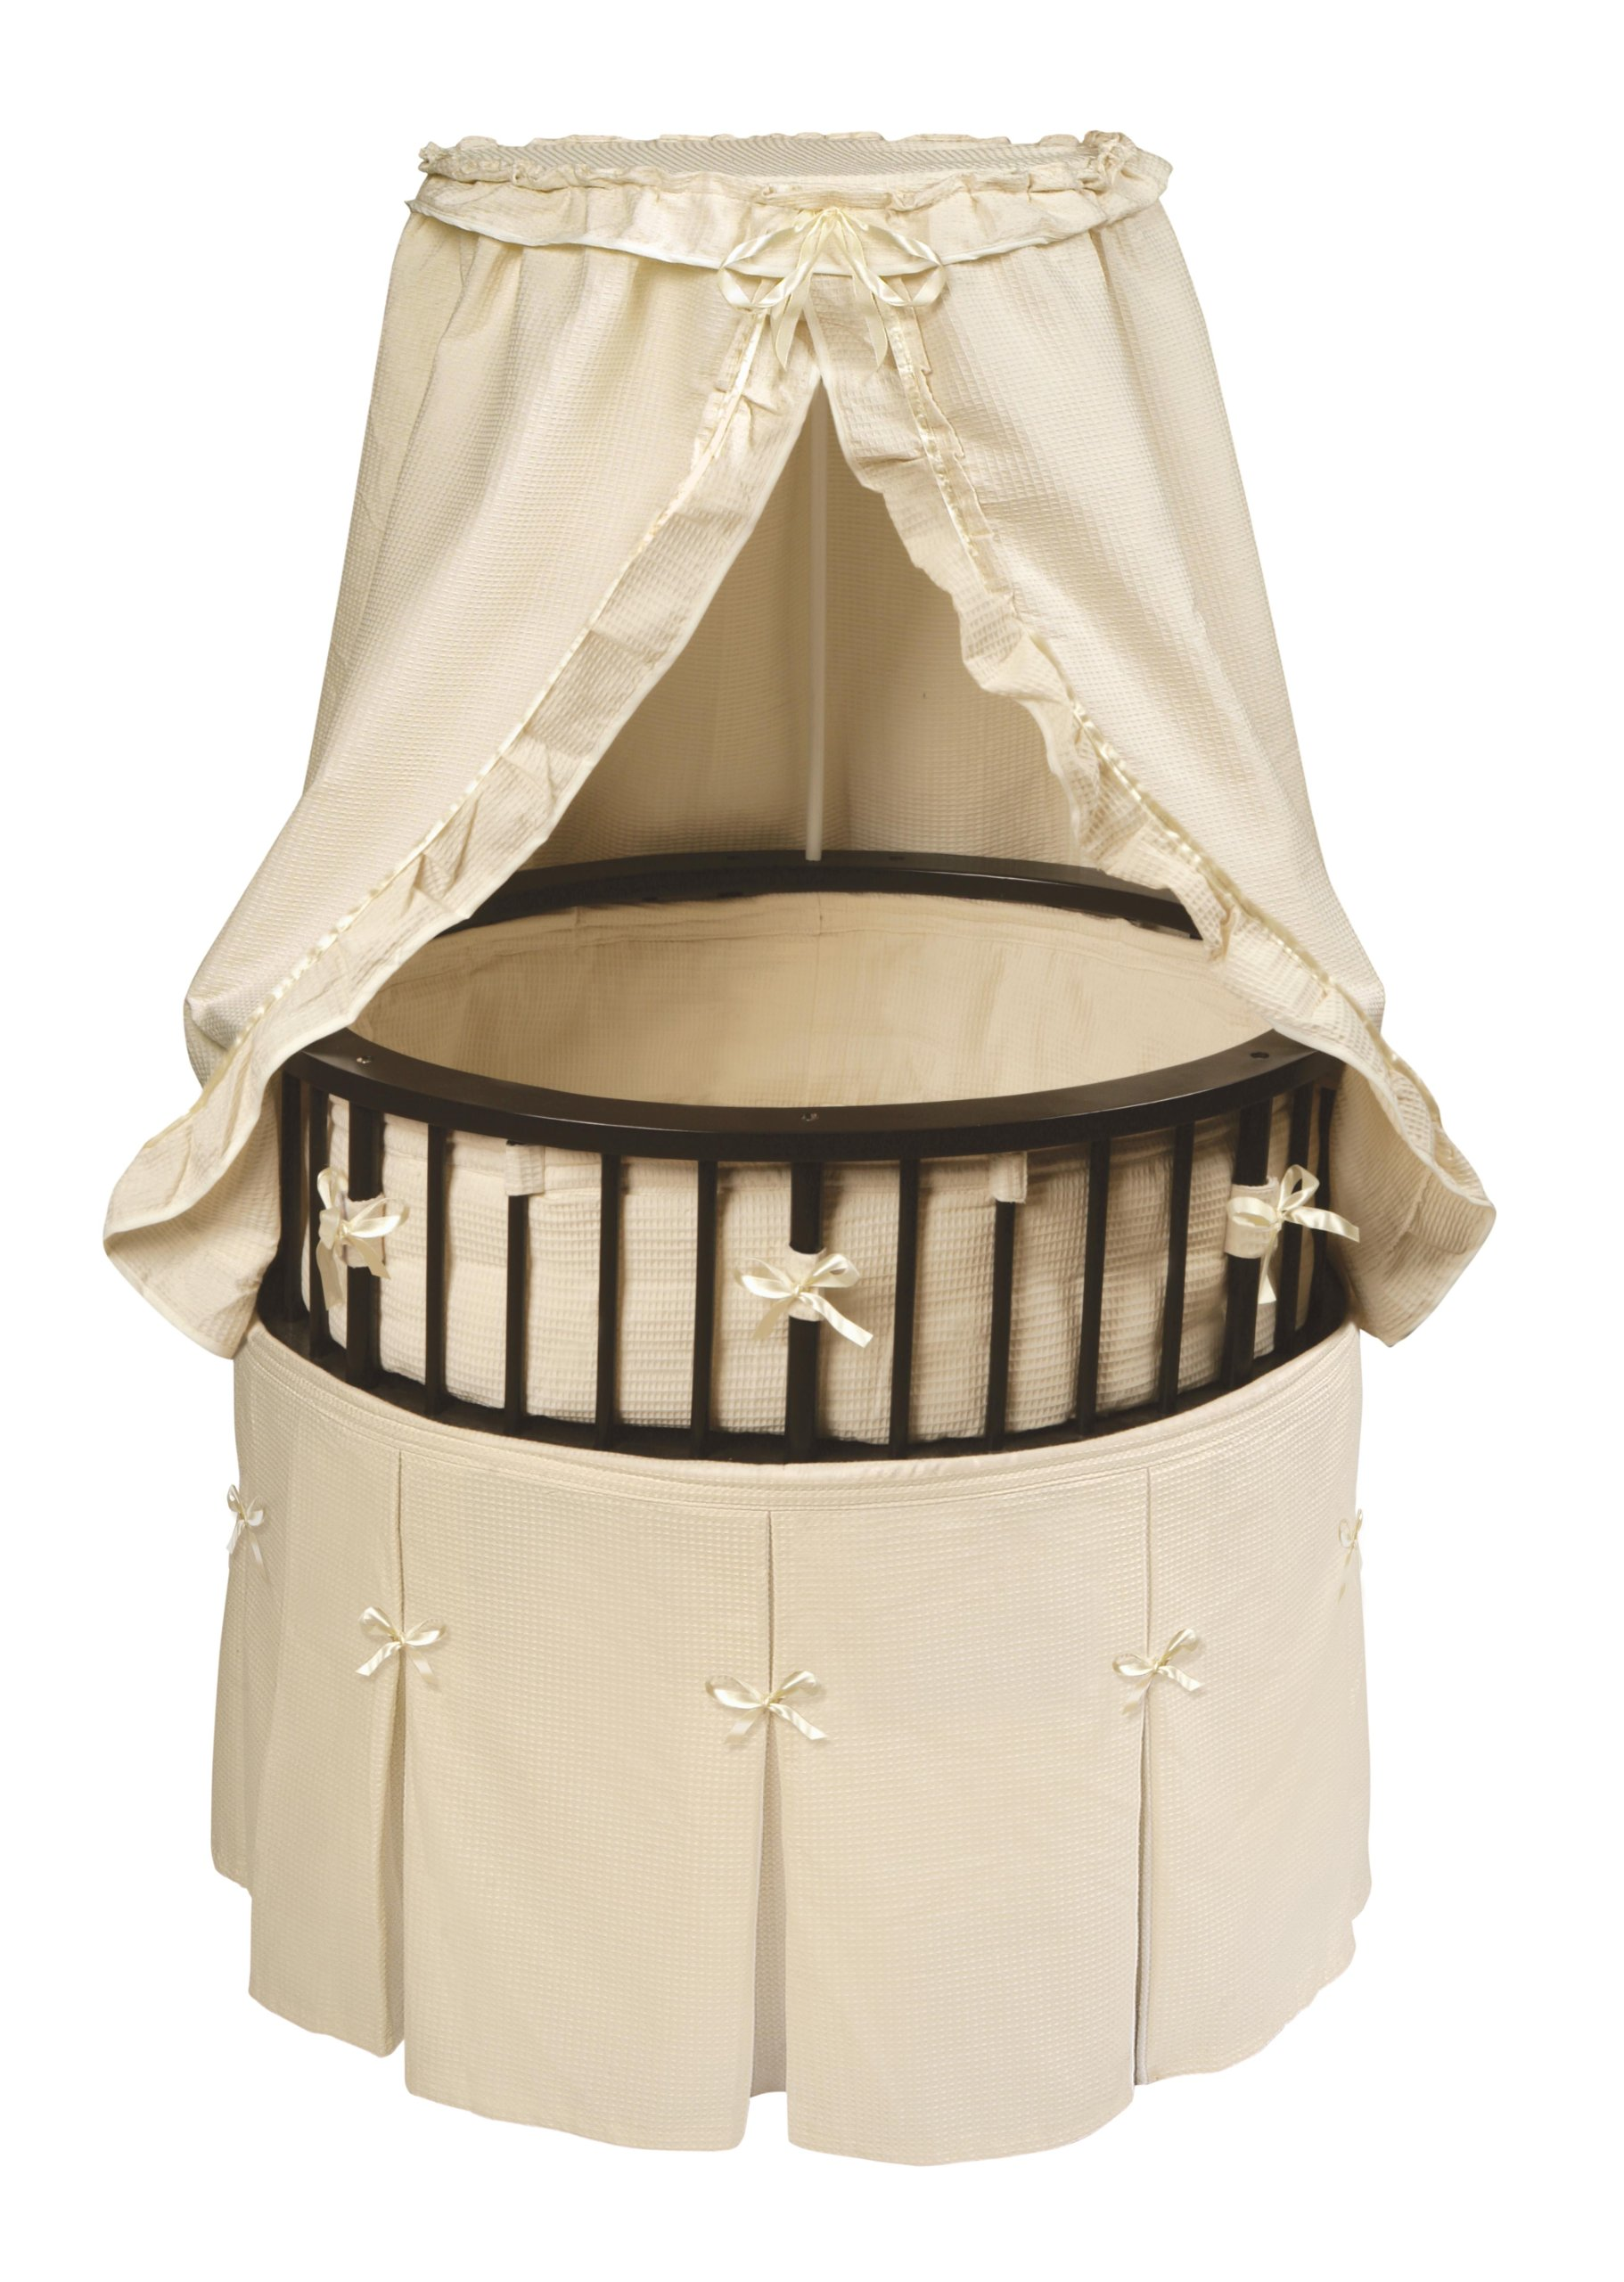 Badger Basket Elite Oval Bassinet with Waffle Bedding, Espresso/Ecru by Badger Basket